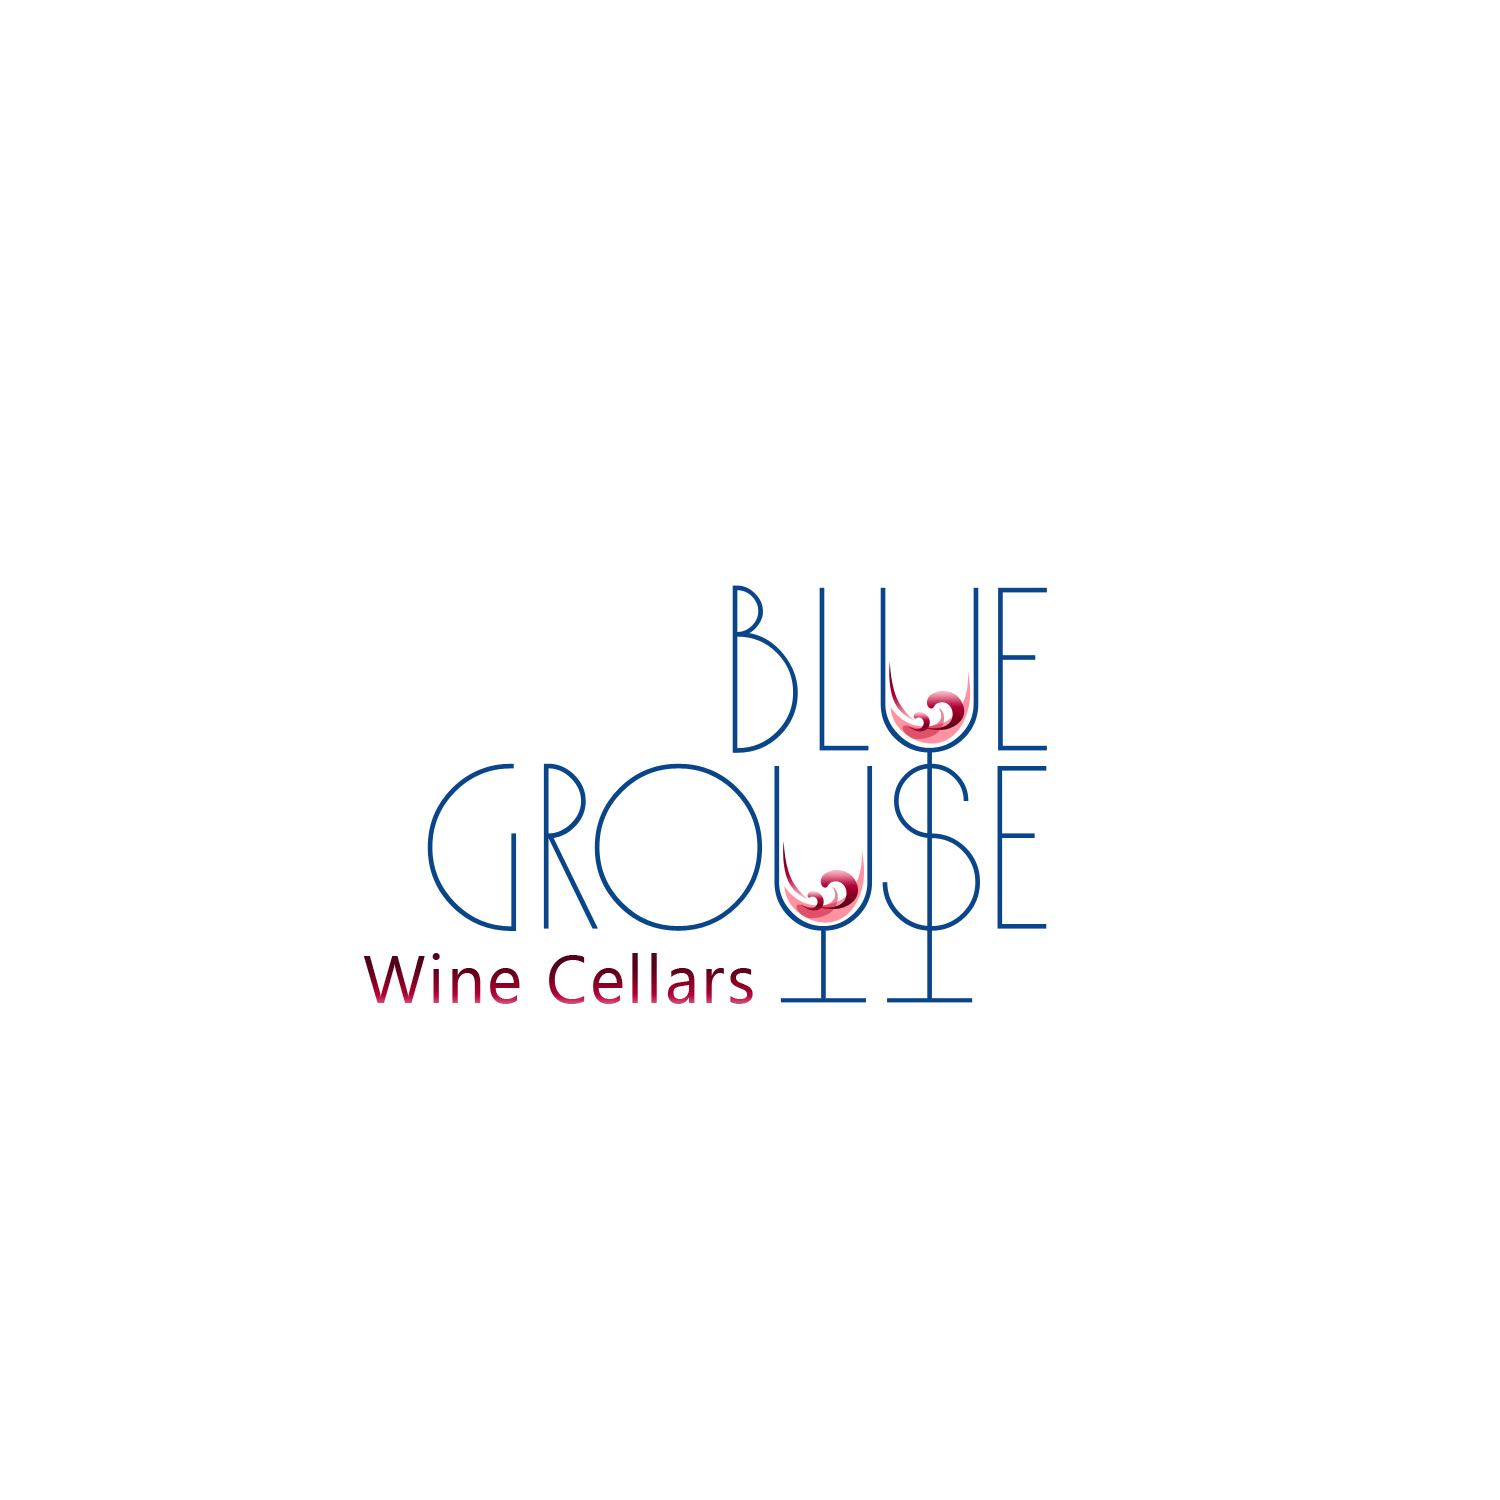 Logo Design by Private User - Entry No. 55 in the Logo Design Contest Creative Logo Design for Blue Grouse Wine Cellars.